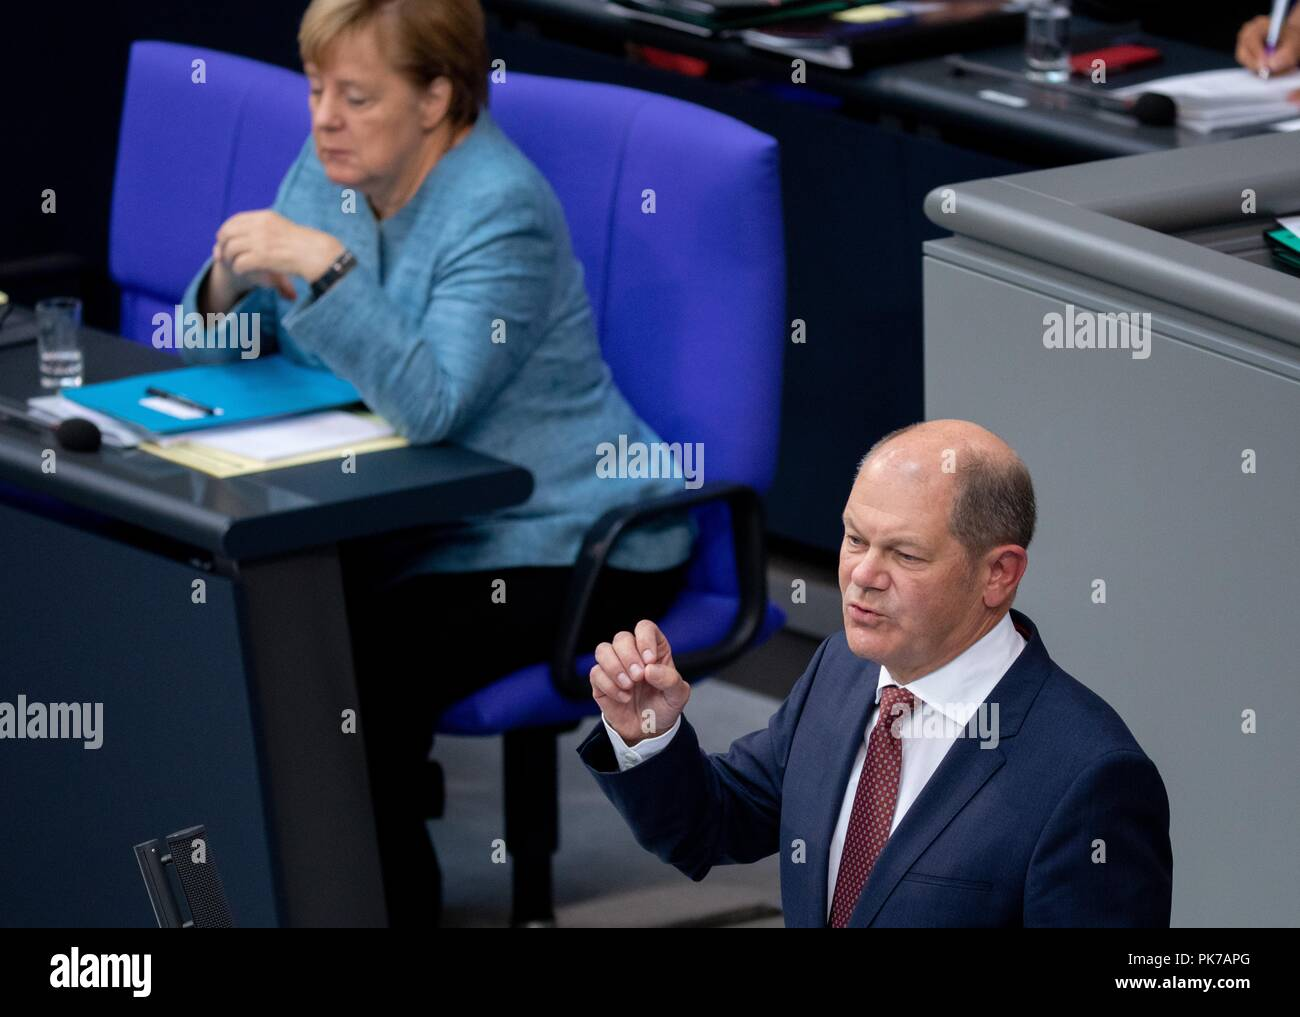 Berlin, Germany. 11 September 2018, Berlin: Olaf Scholz (SPD), Federal Minister of Finance, speaks at the plenary session in the German Bundestag, with Chancellor Angela Merkel (CDU) sitting in the background. The main topic of the 47th session of the 19th legislative period is the Federal Government's draft budget 2019 and the federal budget 2018 to 2022. Photo: Bernd von Jutrczenka/dpa Credit: dpa picture alliance/Alamy Live News - Stock Image